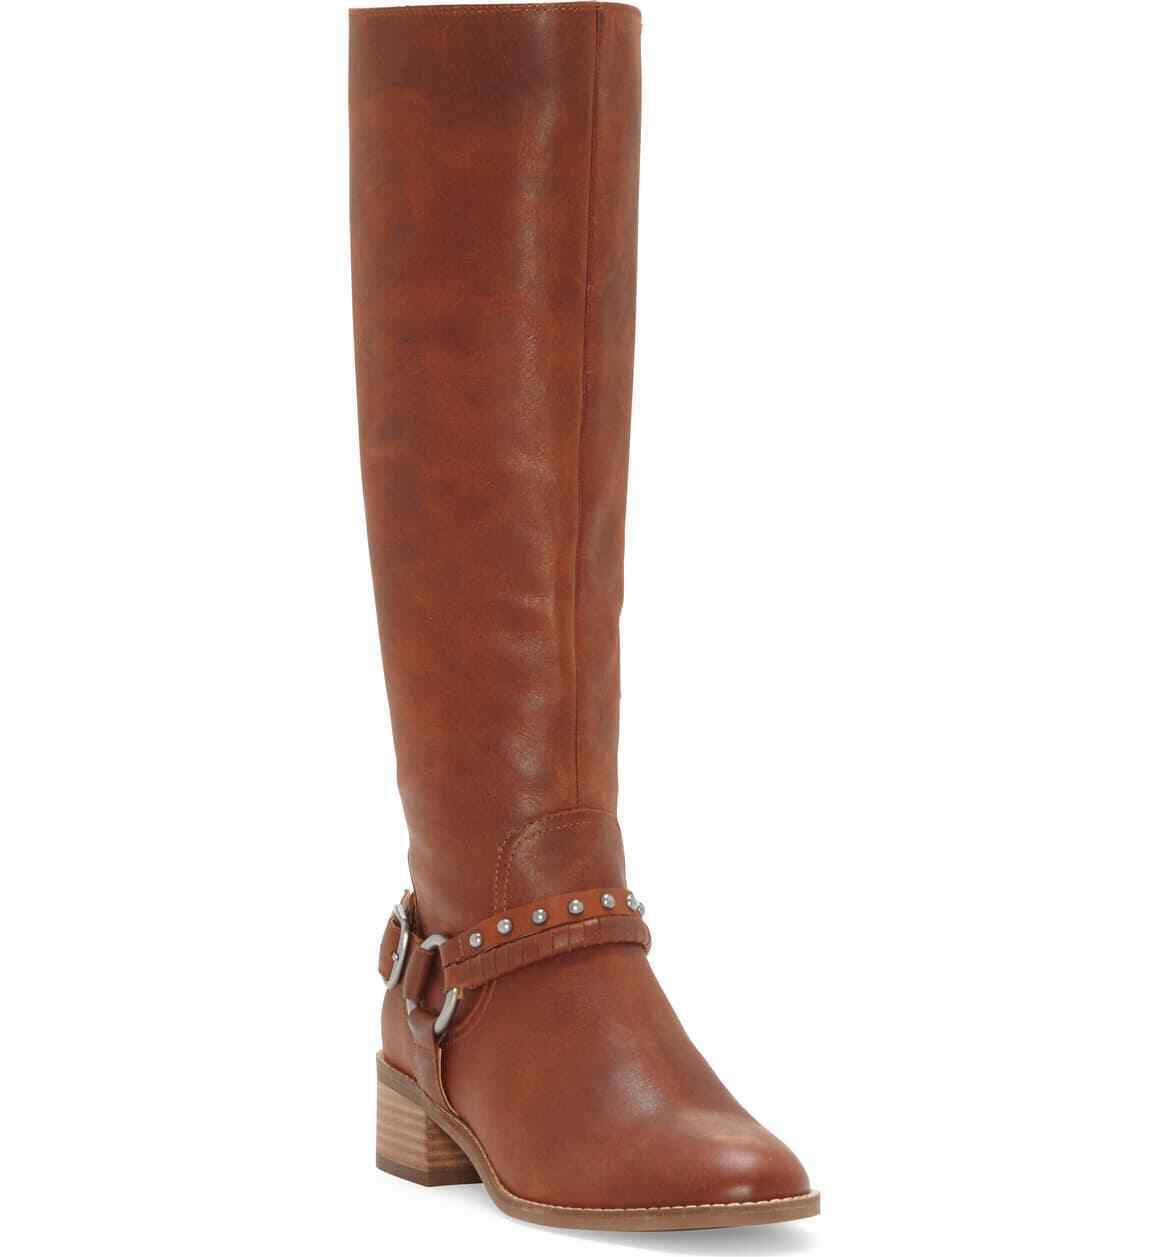 Lucky Brand KARESI Equestrian Boot Whiskey Tan Leather Knee High Riding Boots